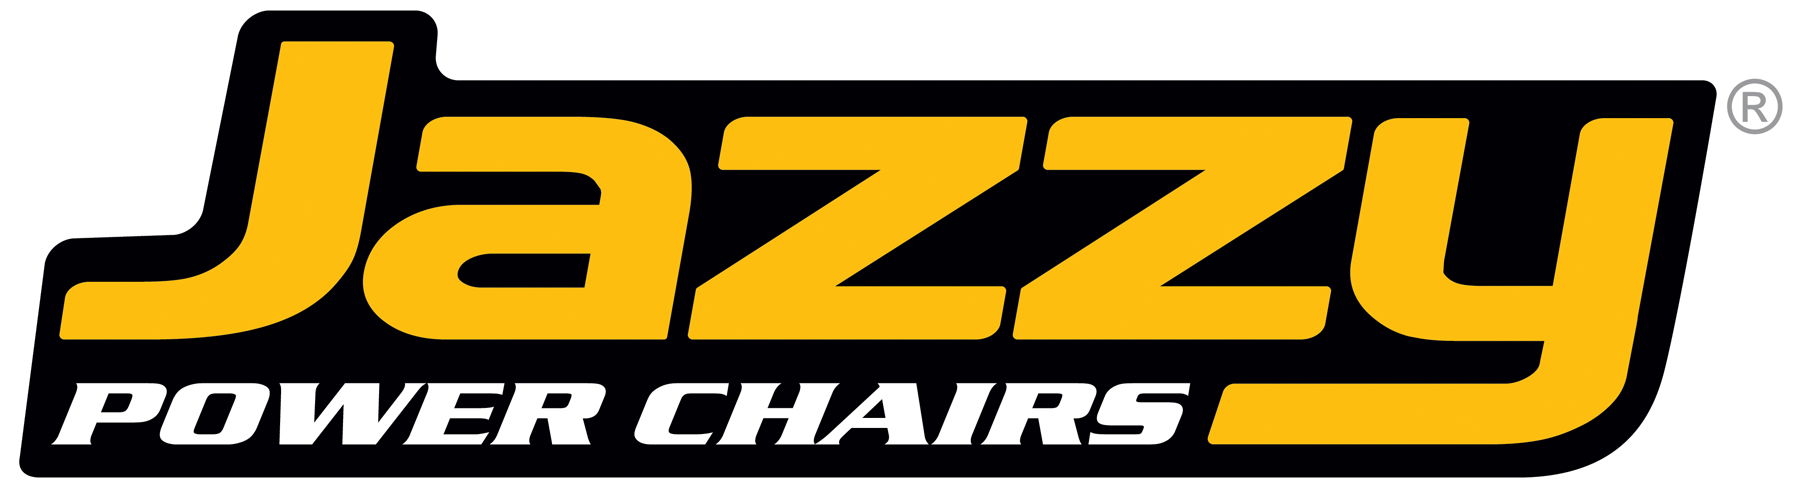 jazzy-power-chairs-logo-2-09.jpg